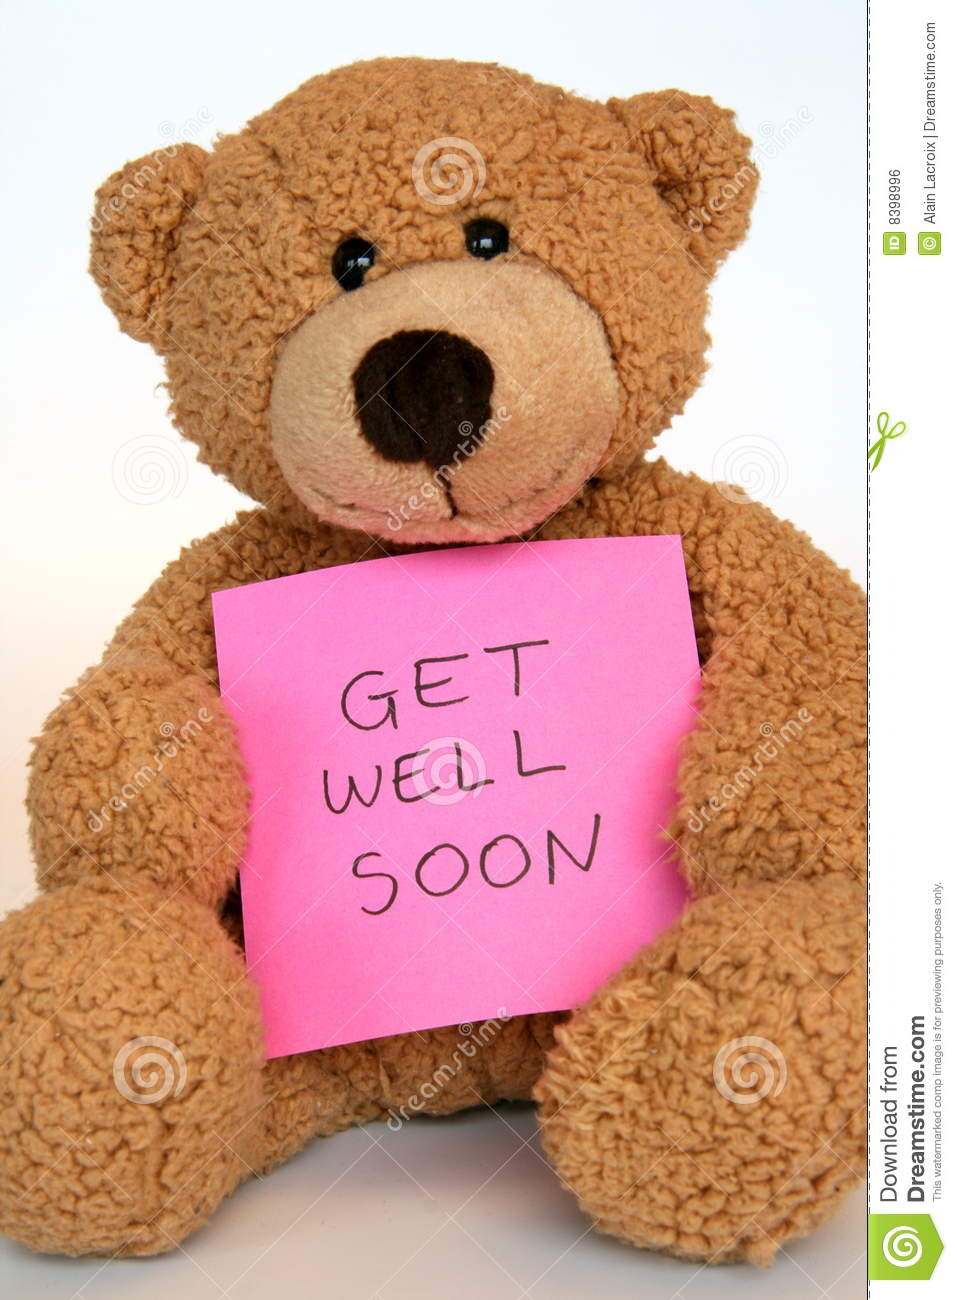 Get Well Soon Teddy Bear Image